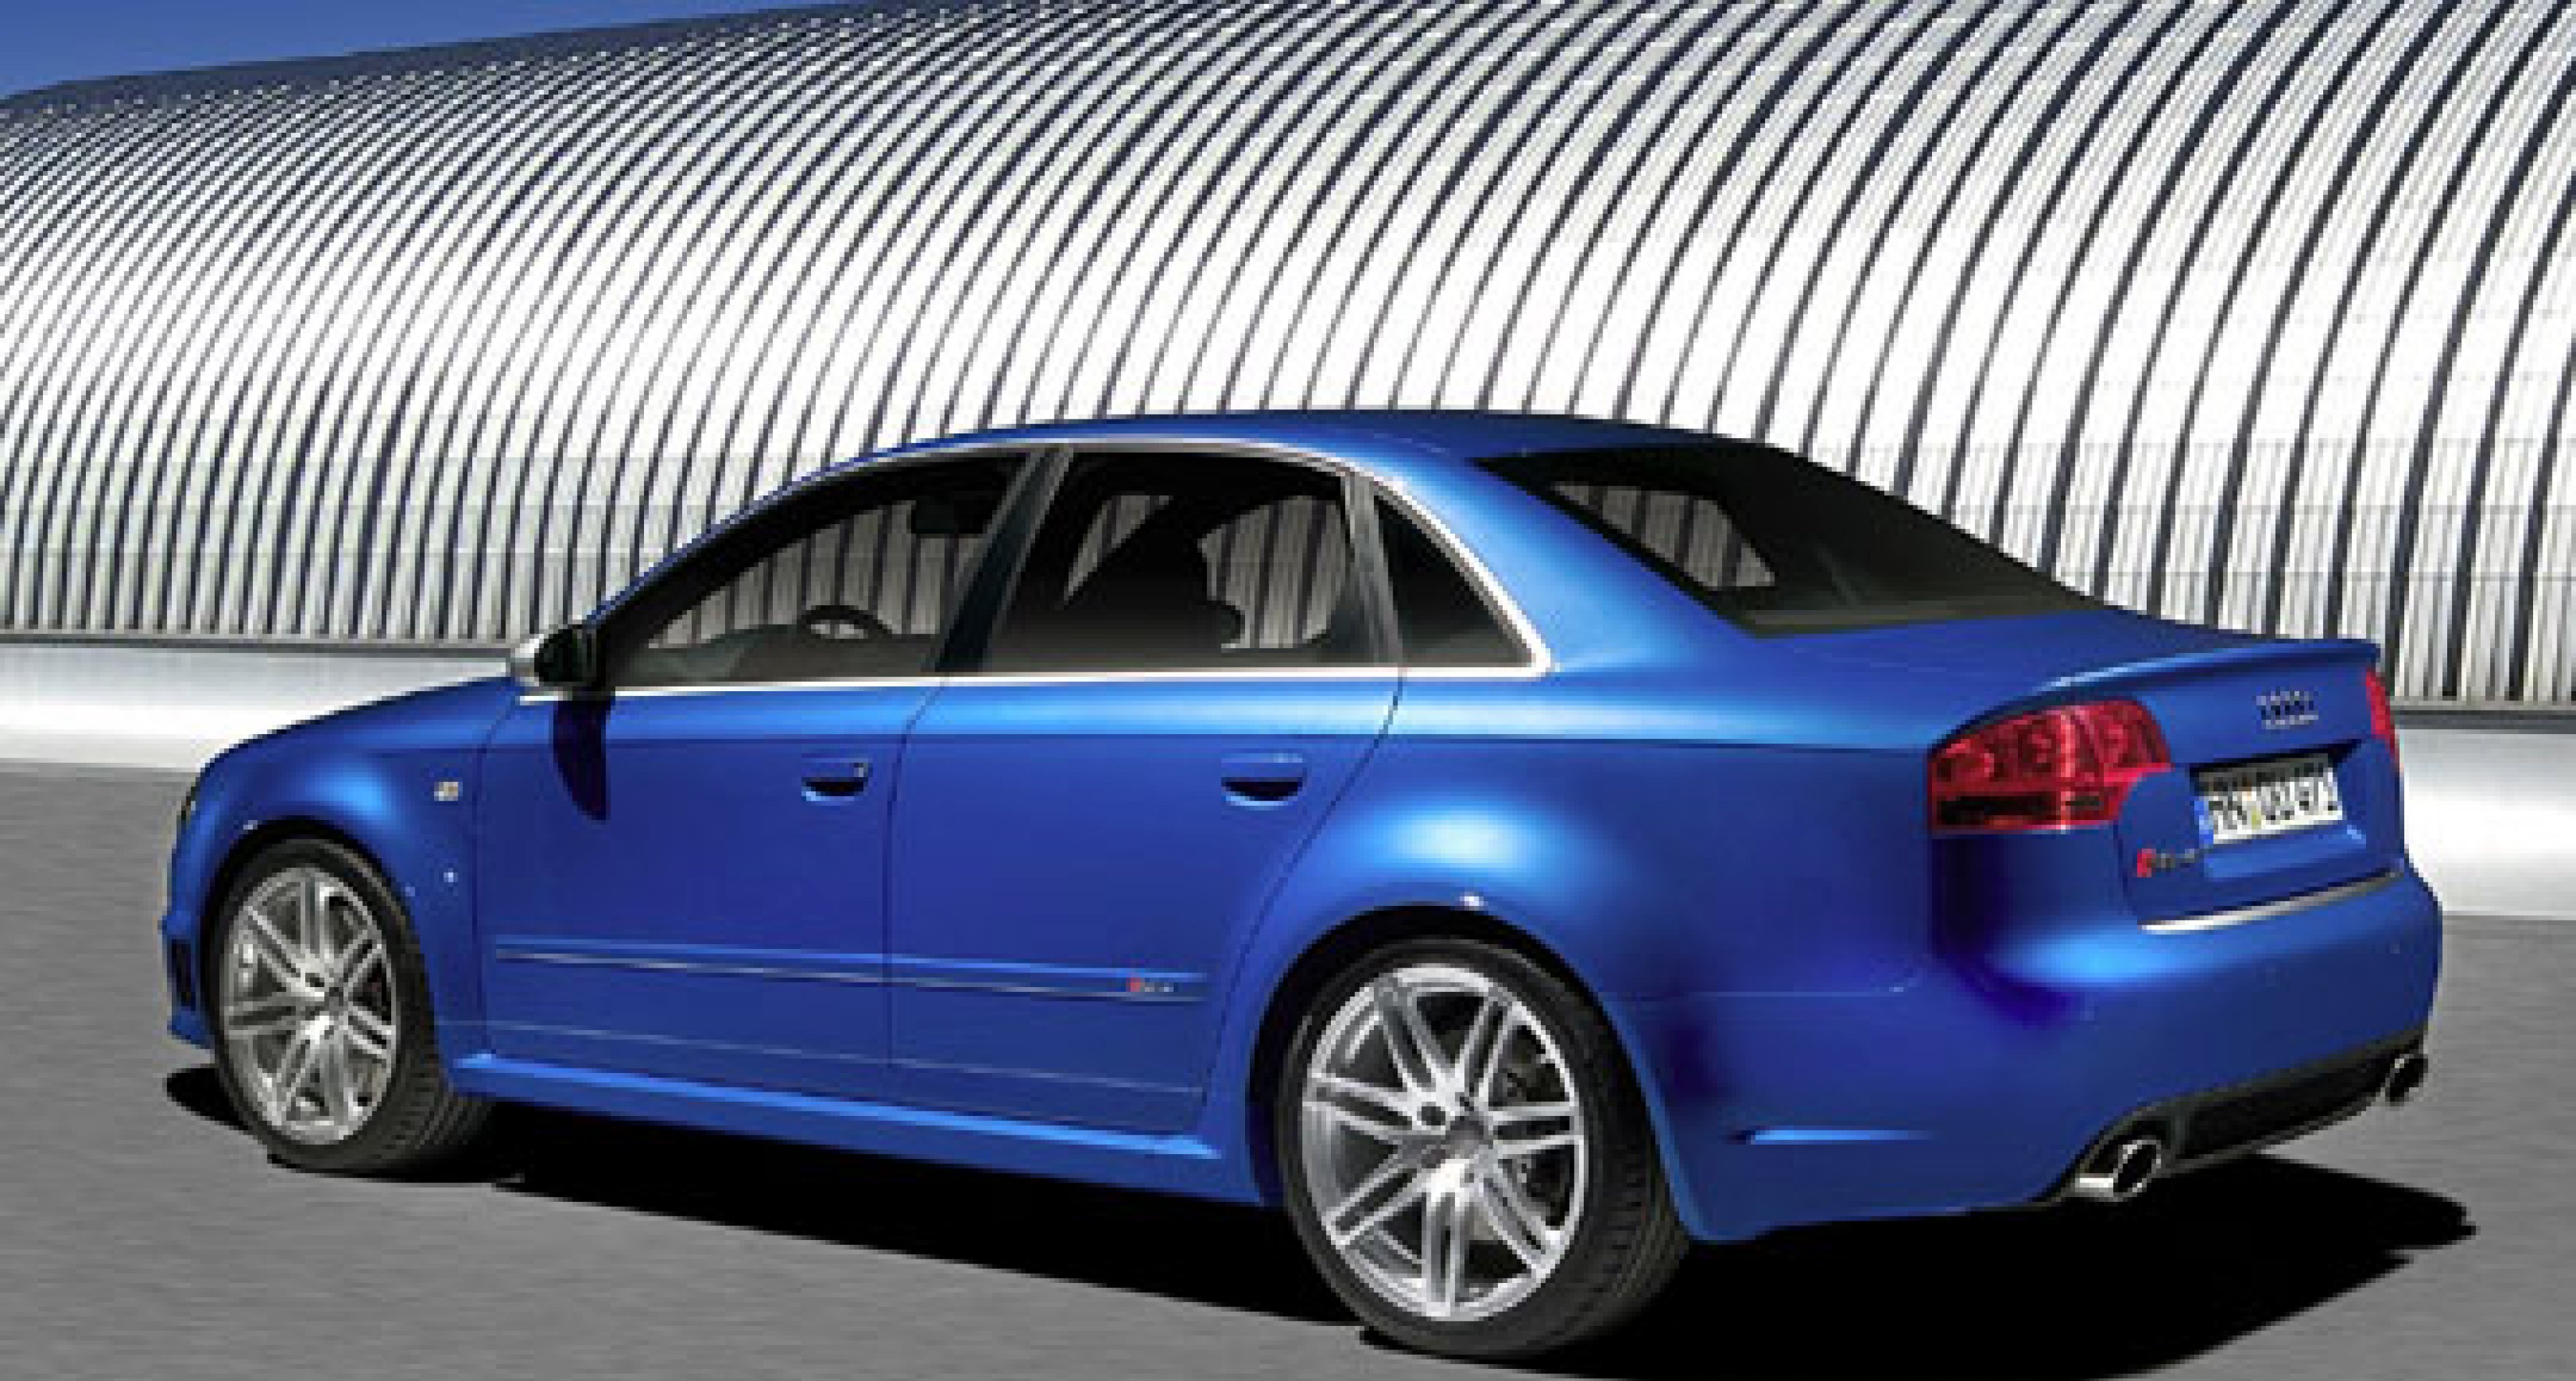 New 420ps Audi RS 4 Quattro Saloon